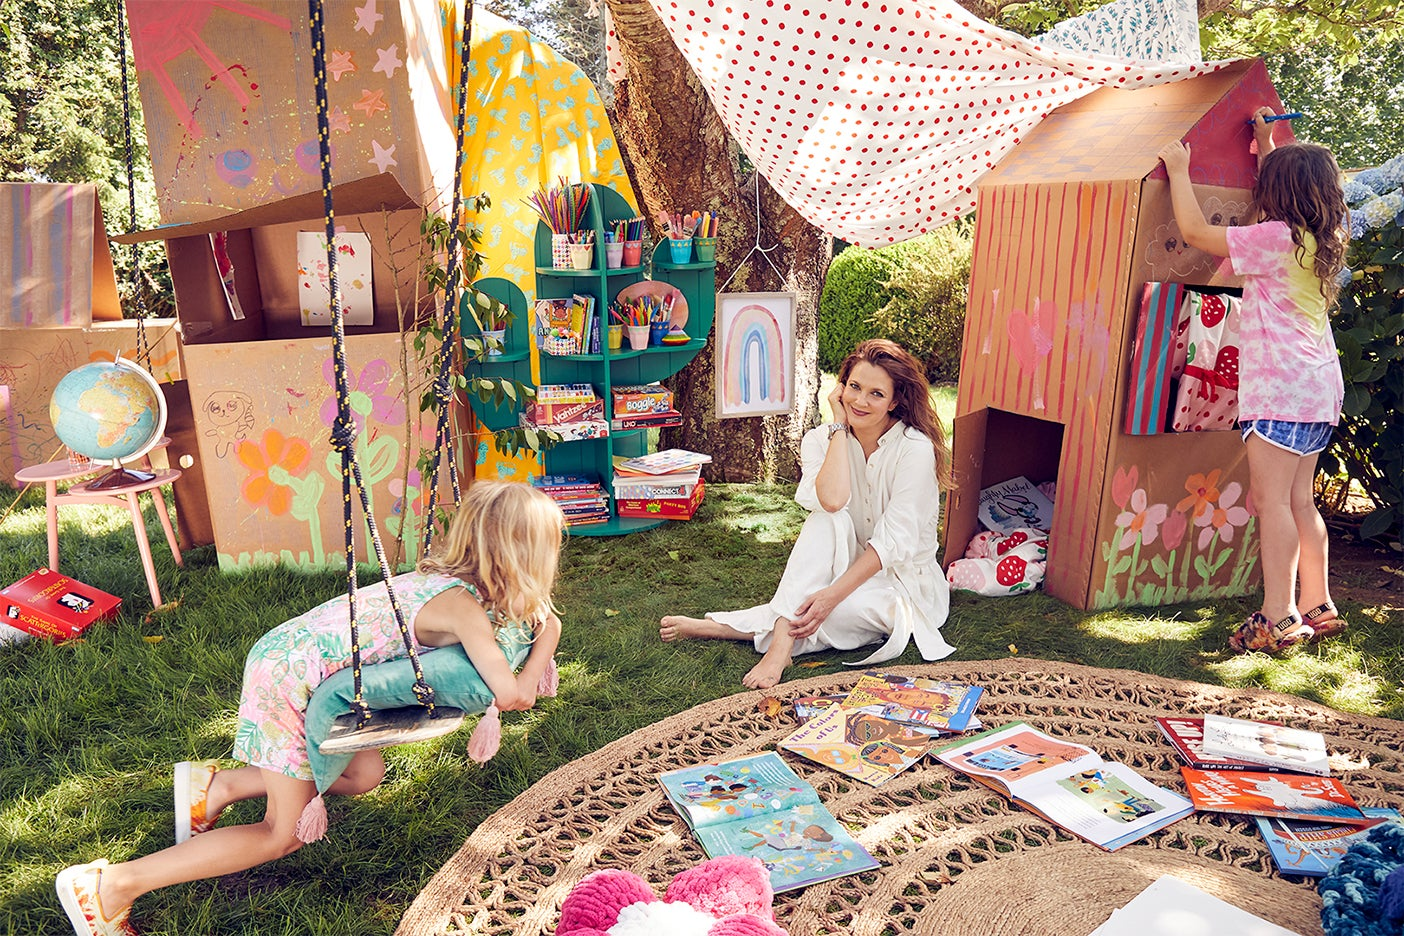 Drew Barrymore surrounded by forts outside her home.